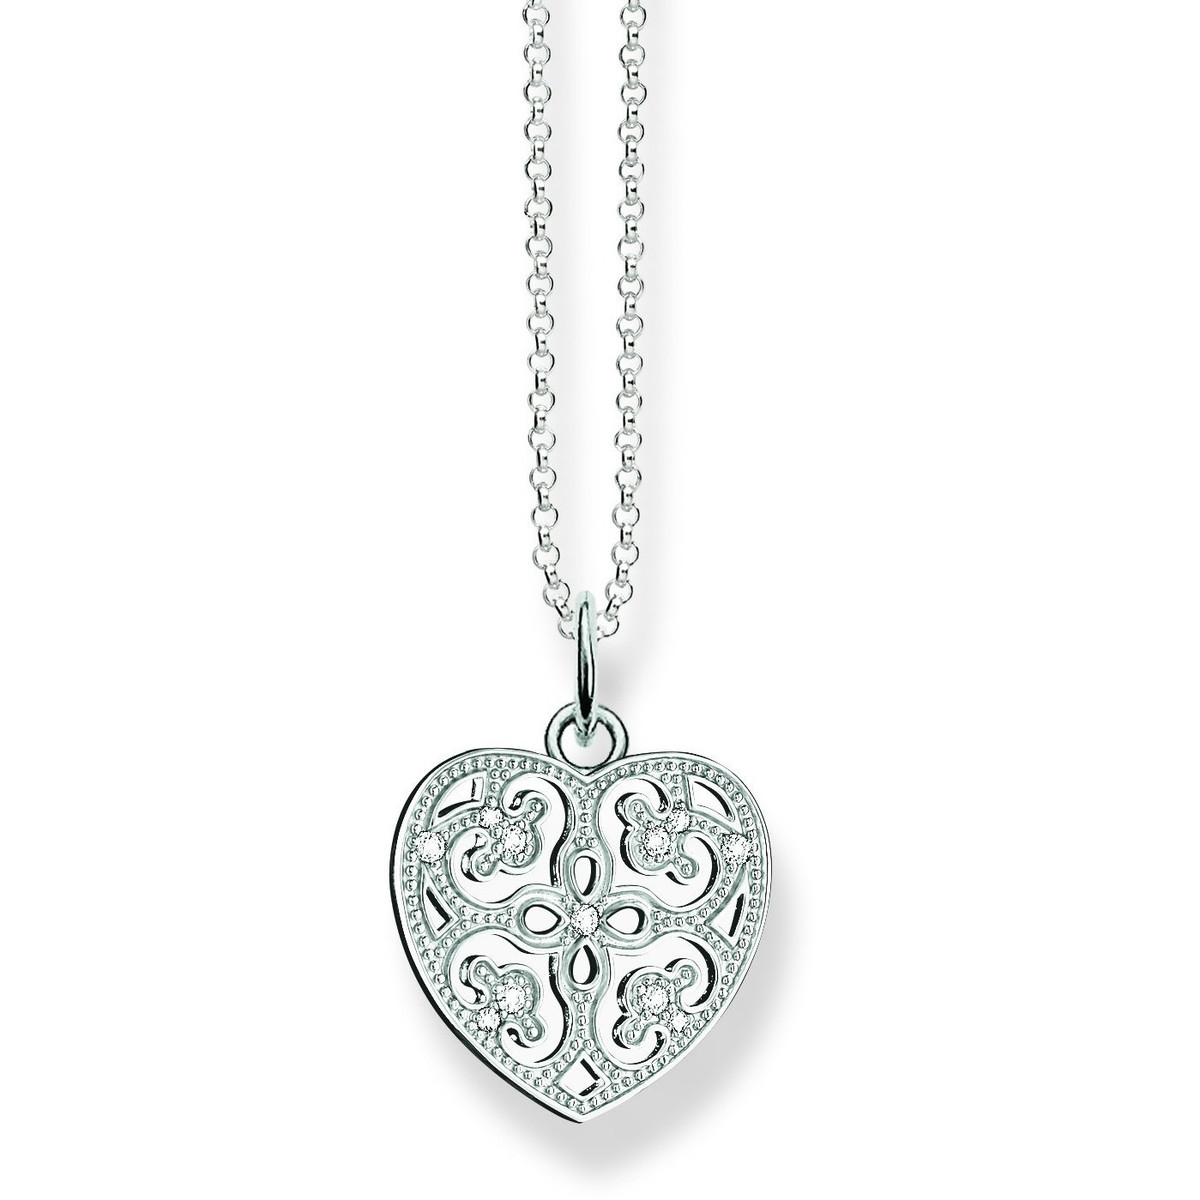 Thomas sabo glam soul sterling silver zirconia ornament heart thomas sabo glam soul sterling silver zirconia ornament heart pendant necklace ke1557 051 aloadofball Choice Image